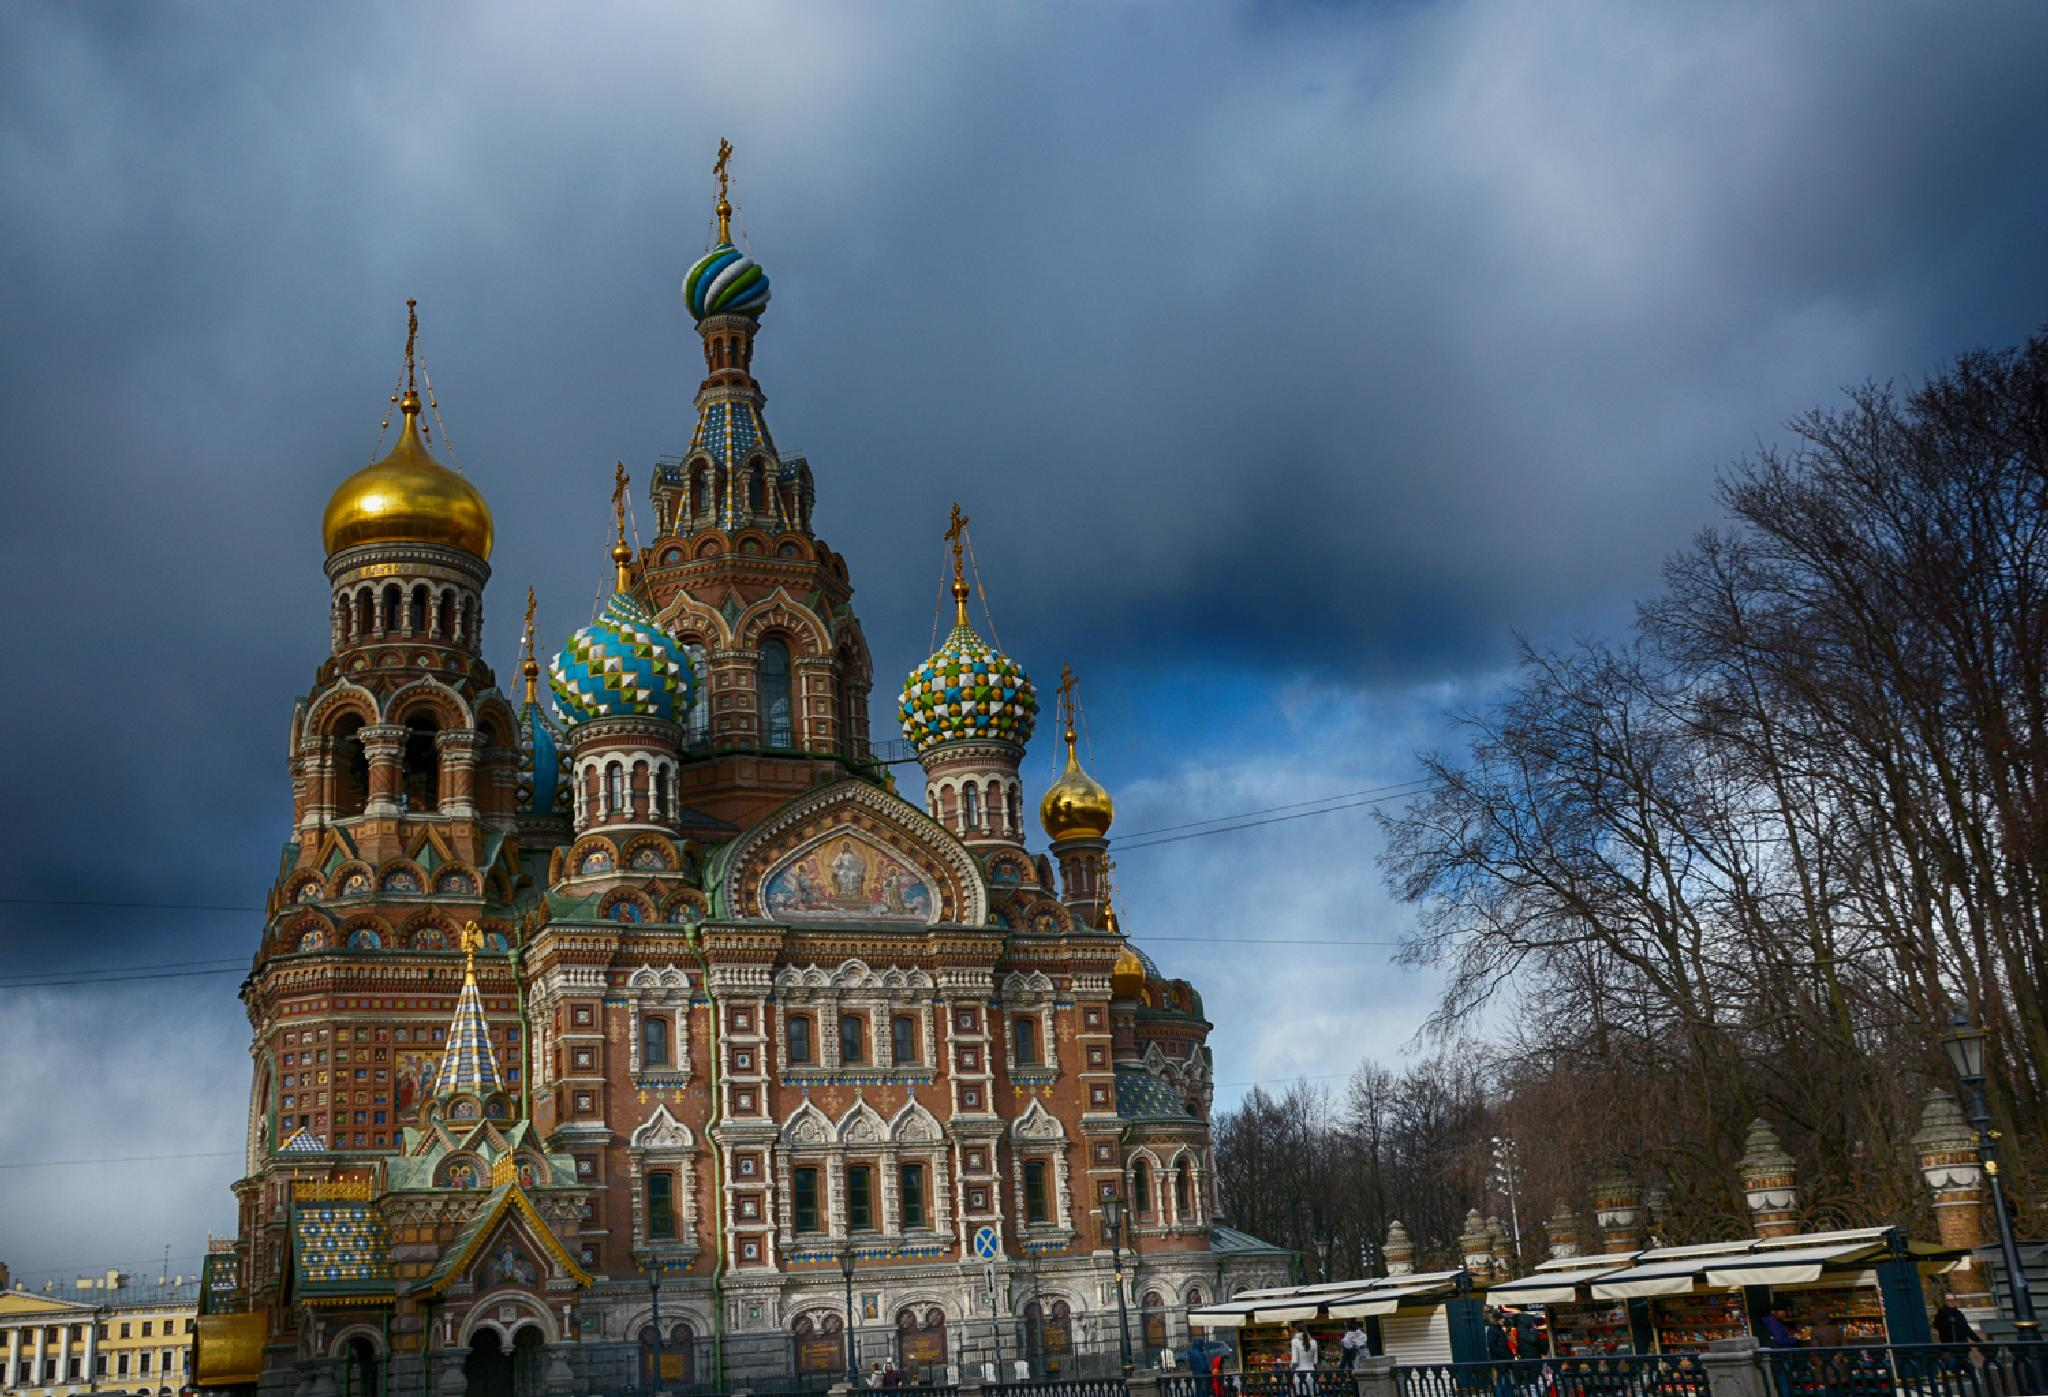 The Church of the Savior on Spilled Blood by Abdurrahman Aksoy